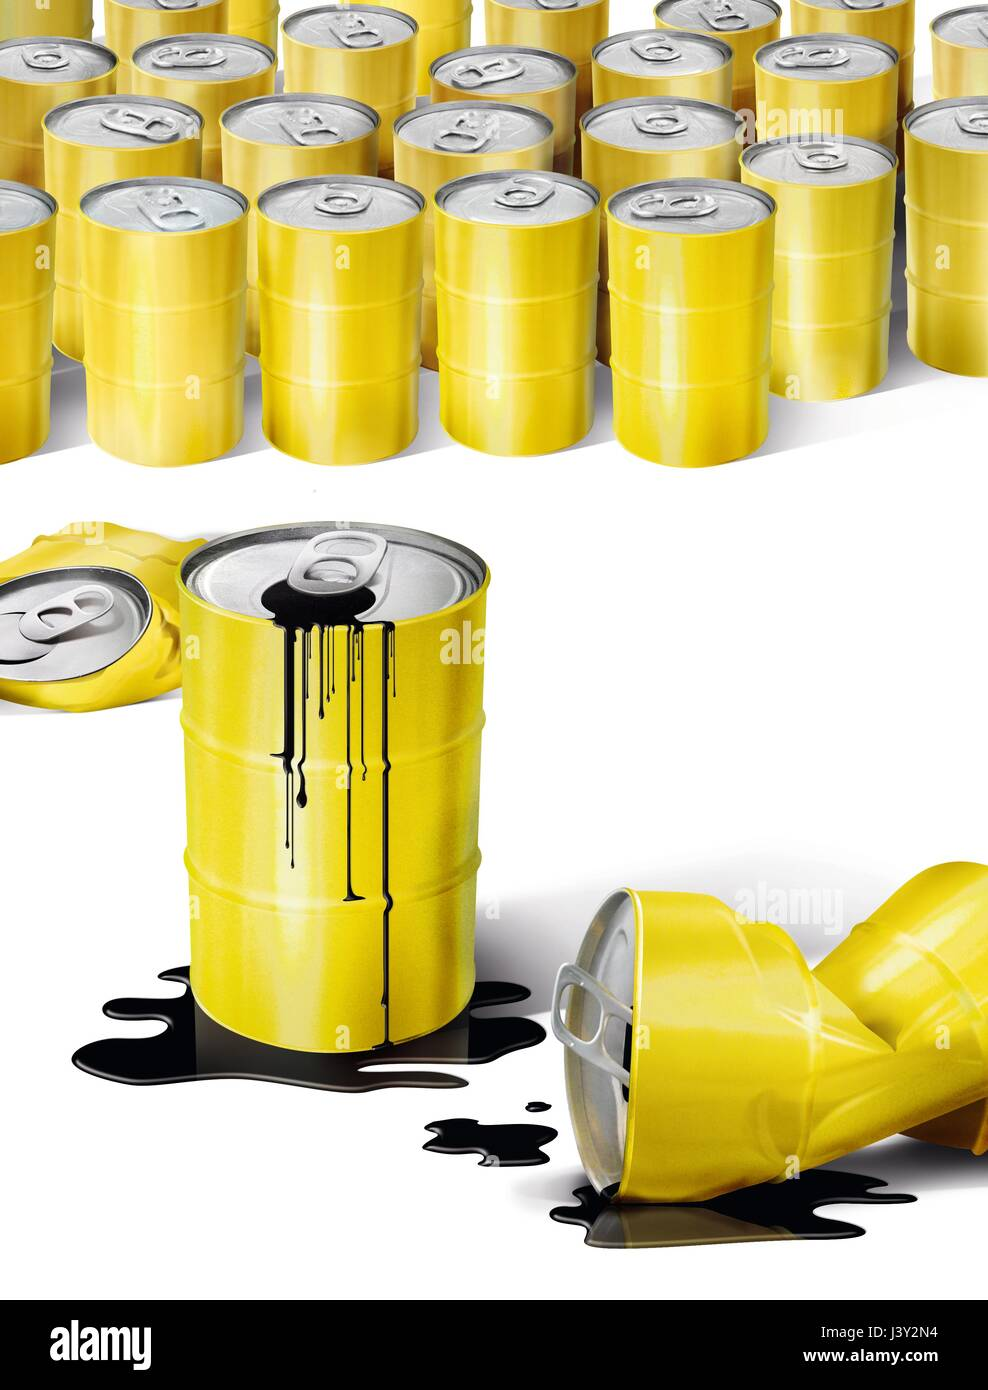 Yellow cans with black liquid - Stock Image